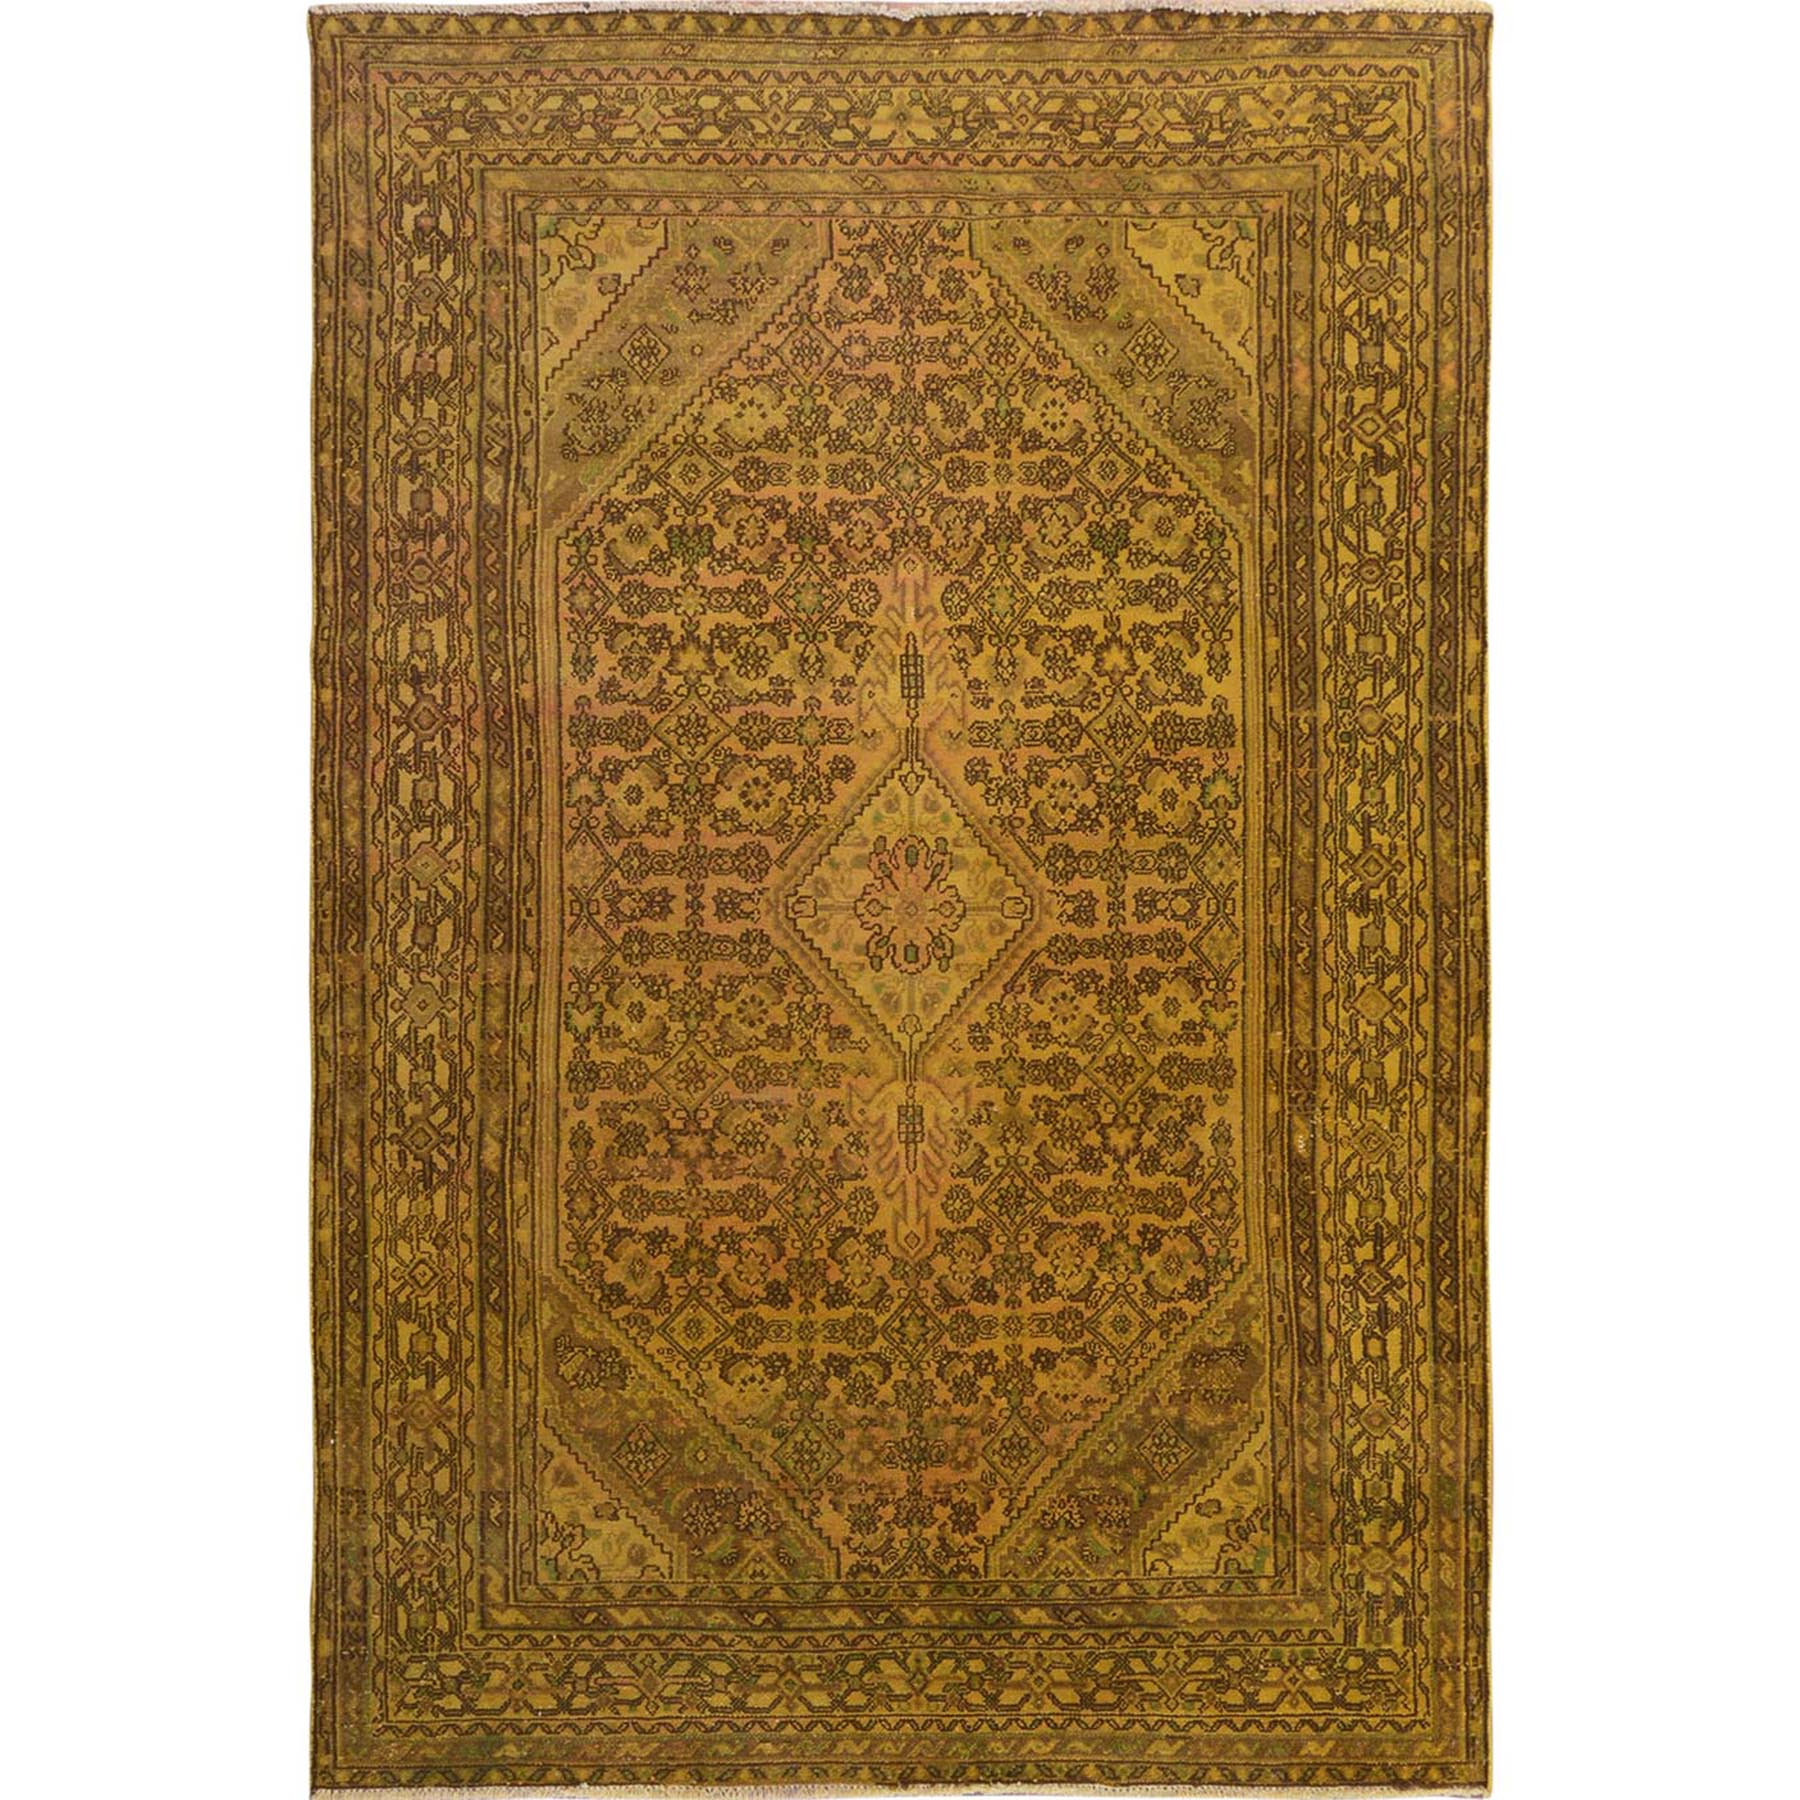 """6'10""""x10'3"""" Yellow Overdyed Vintage Bibikabad Persian Worn Down Hand Knotted Pure Wool Oriental Rug"""